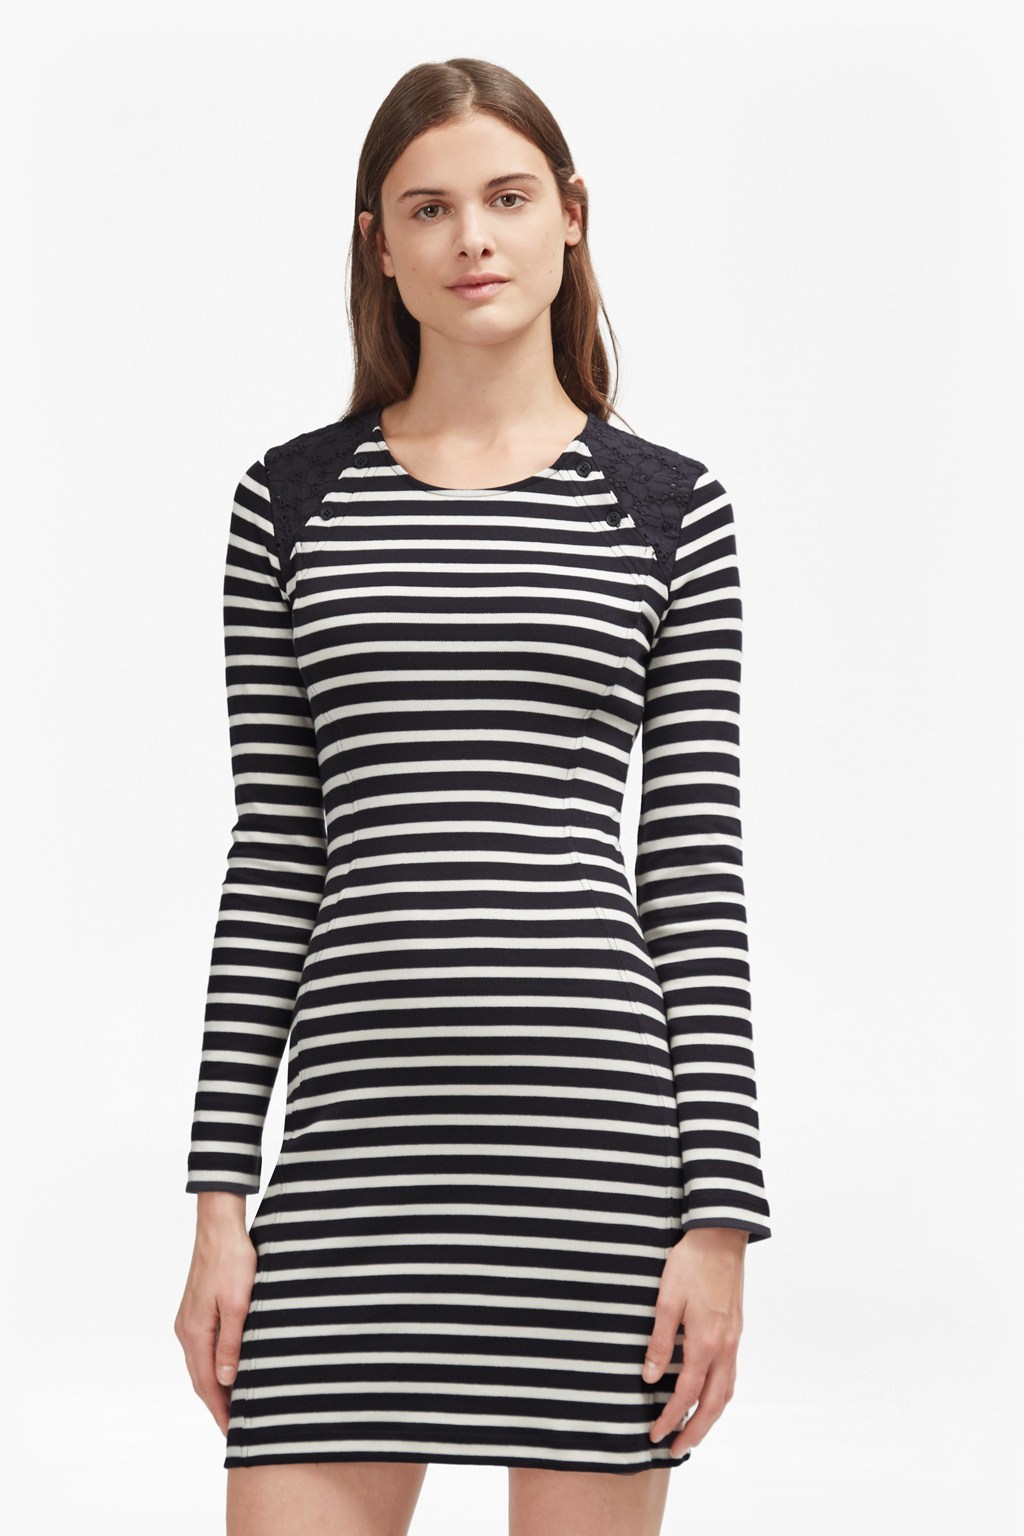 Annie Stripe Tunic Dress Utility Blue/Daisy White - length: mini; fit: tight; pattern: horizontal stripes; style: bodycon; secondary colour: white; predominant colour: navy; occasions: casual; fibres: polyester/polyamide - stretch; neckline: crew; sleeve length: long sleeve; sleeve style: standard; texture group: jersey - clingy; pattern type: fabric; wardrobe: basic; season: a/w 2016